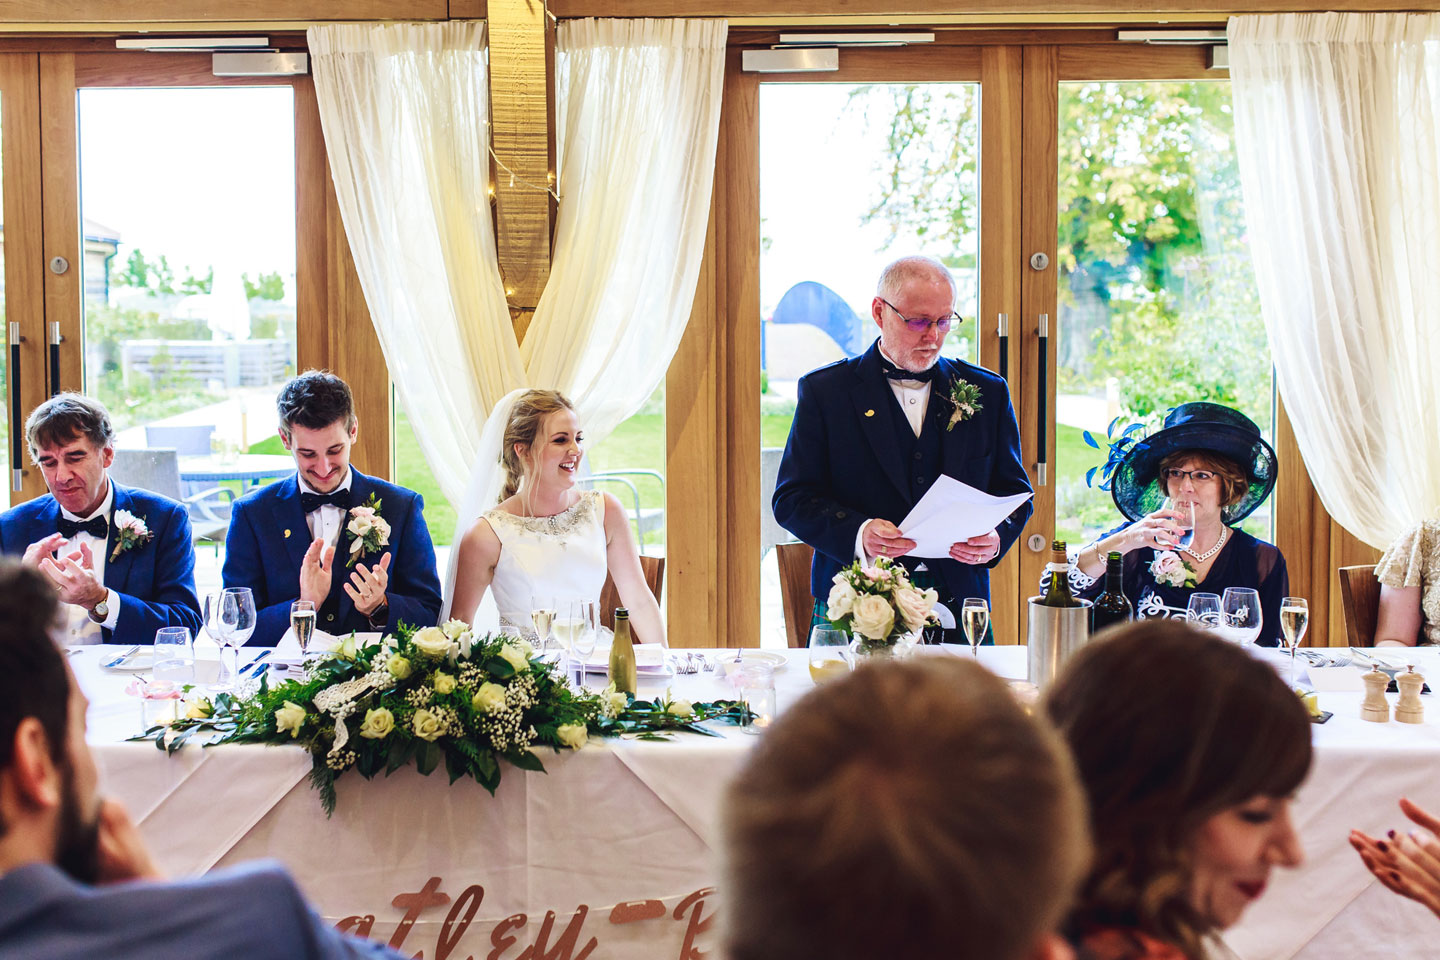 Guests look on as the father of the bride gets the wedding speeches under way